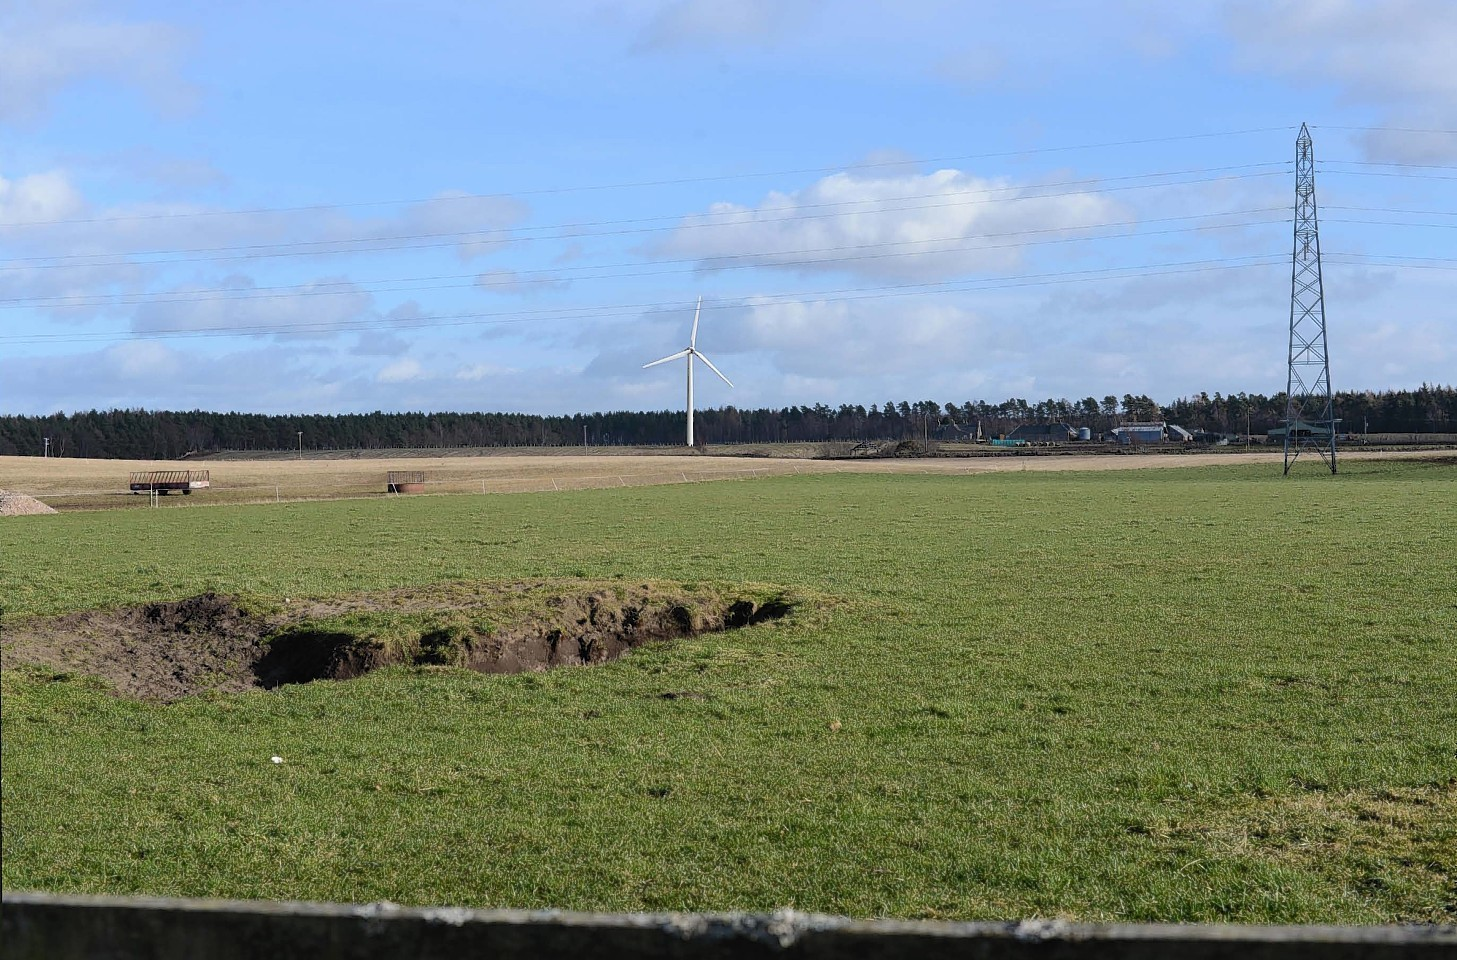 A visualisation of how the single turbine might appear on the landscape.